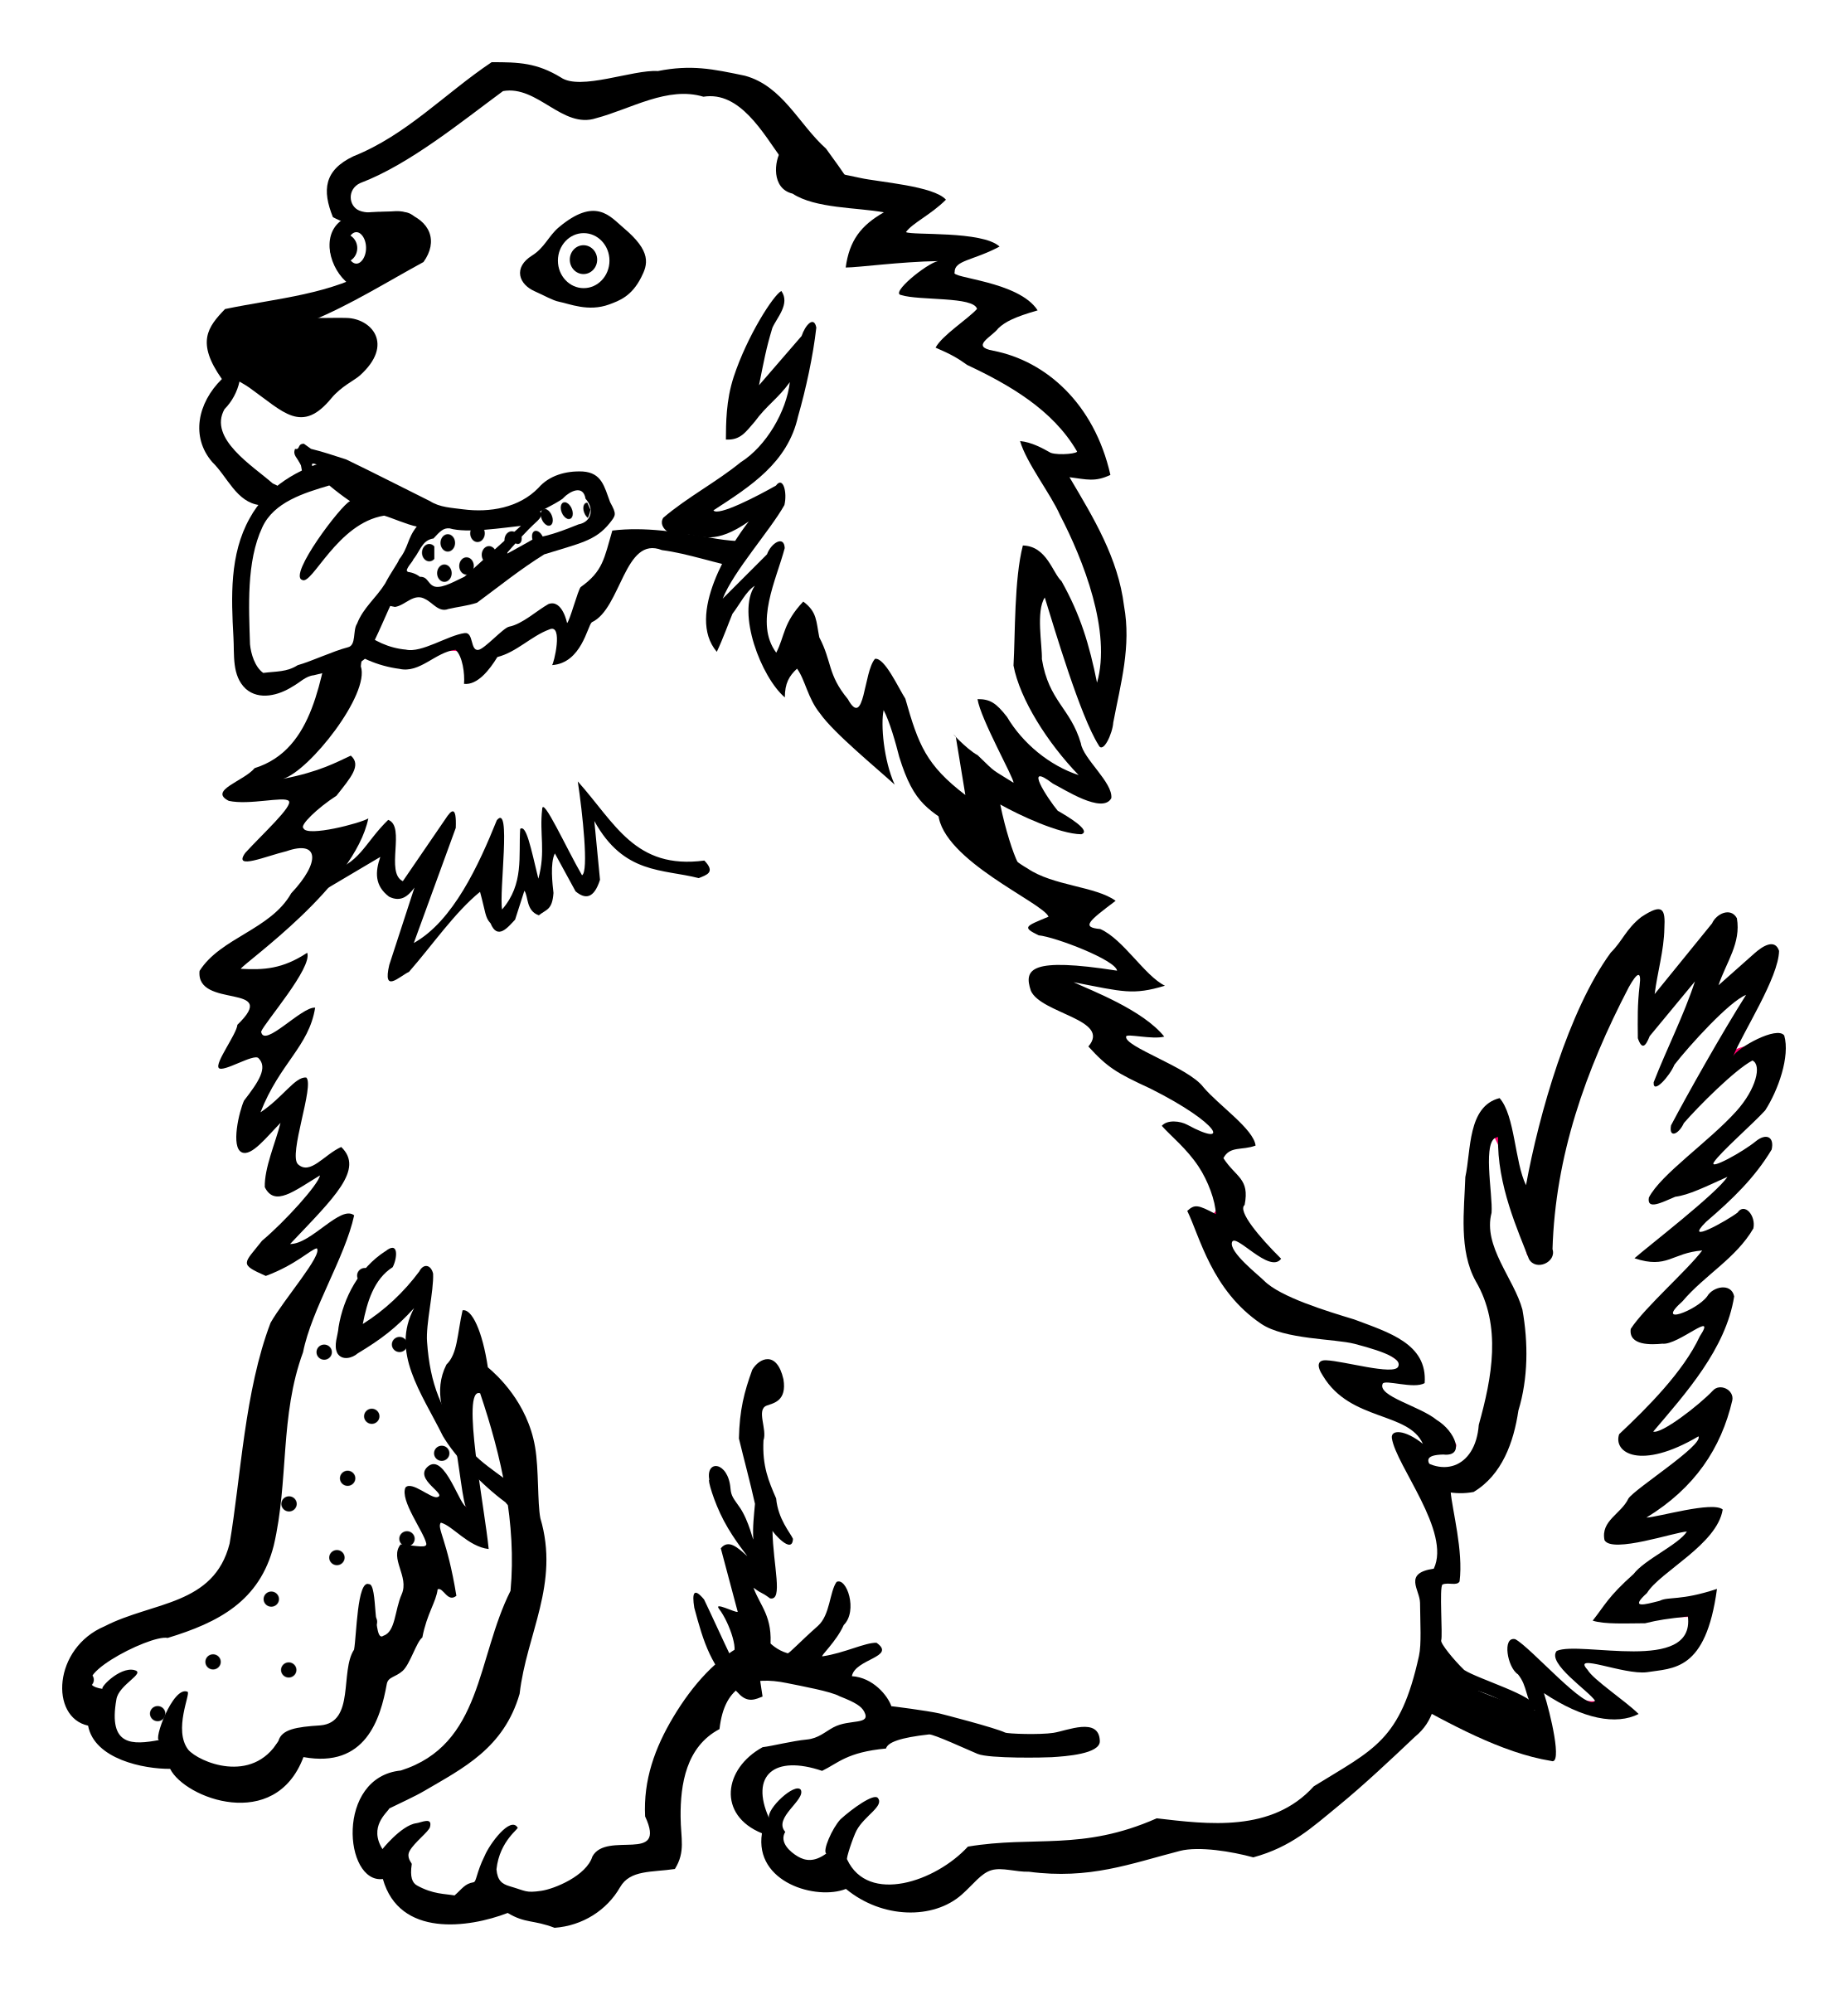 Line Drawing Of A Dog : Dog line drawing at getdrawings free for personal